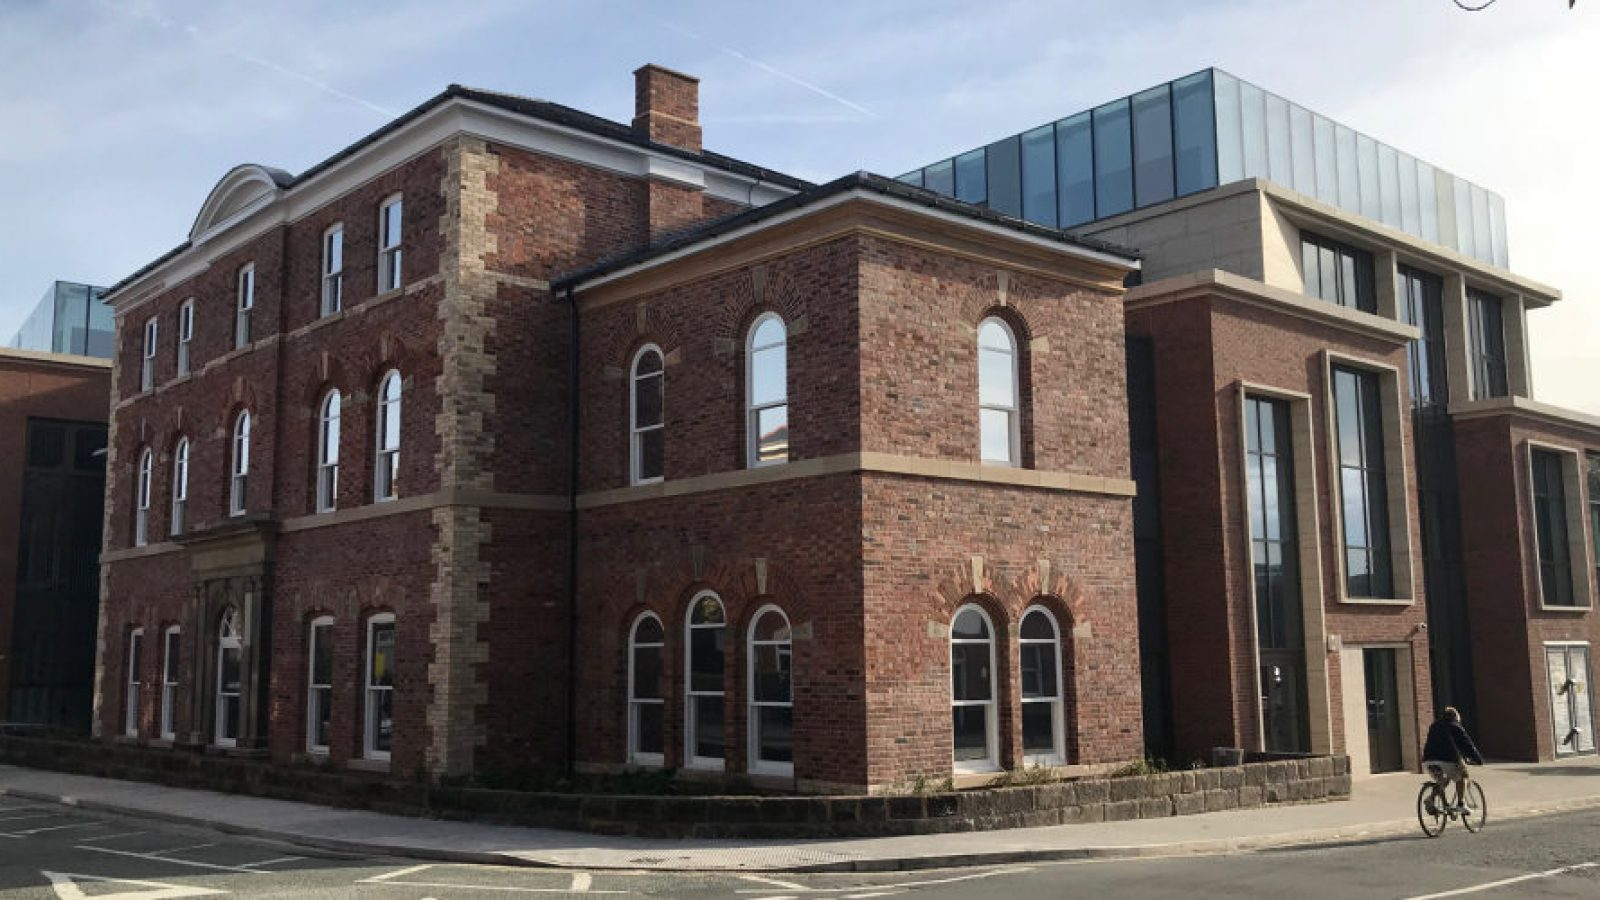 The health and wellbeing centre replaced the Victorian Altrincham General